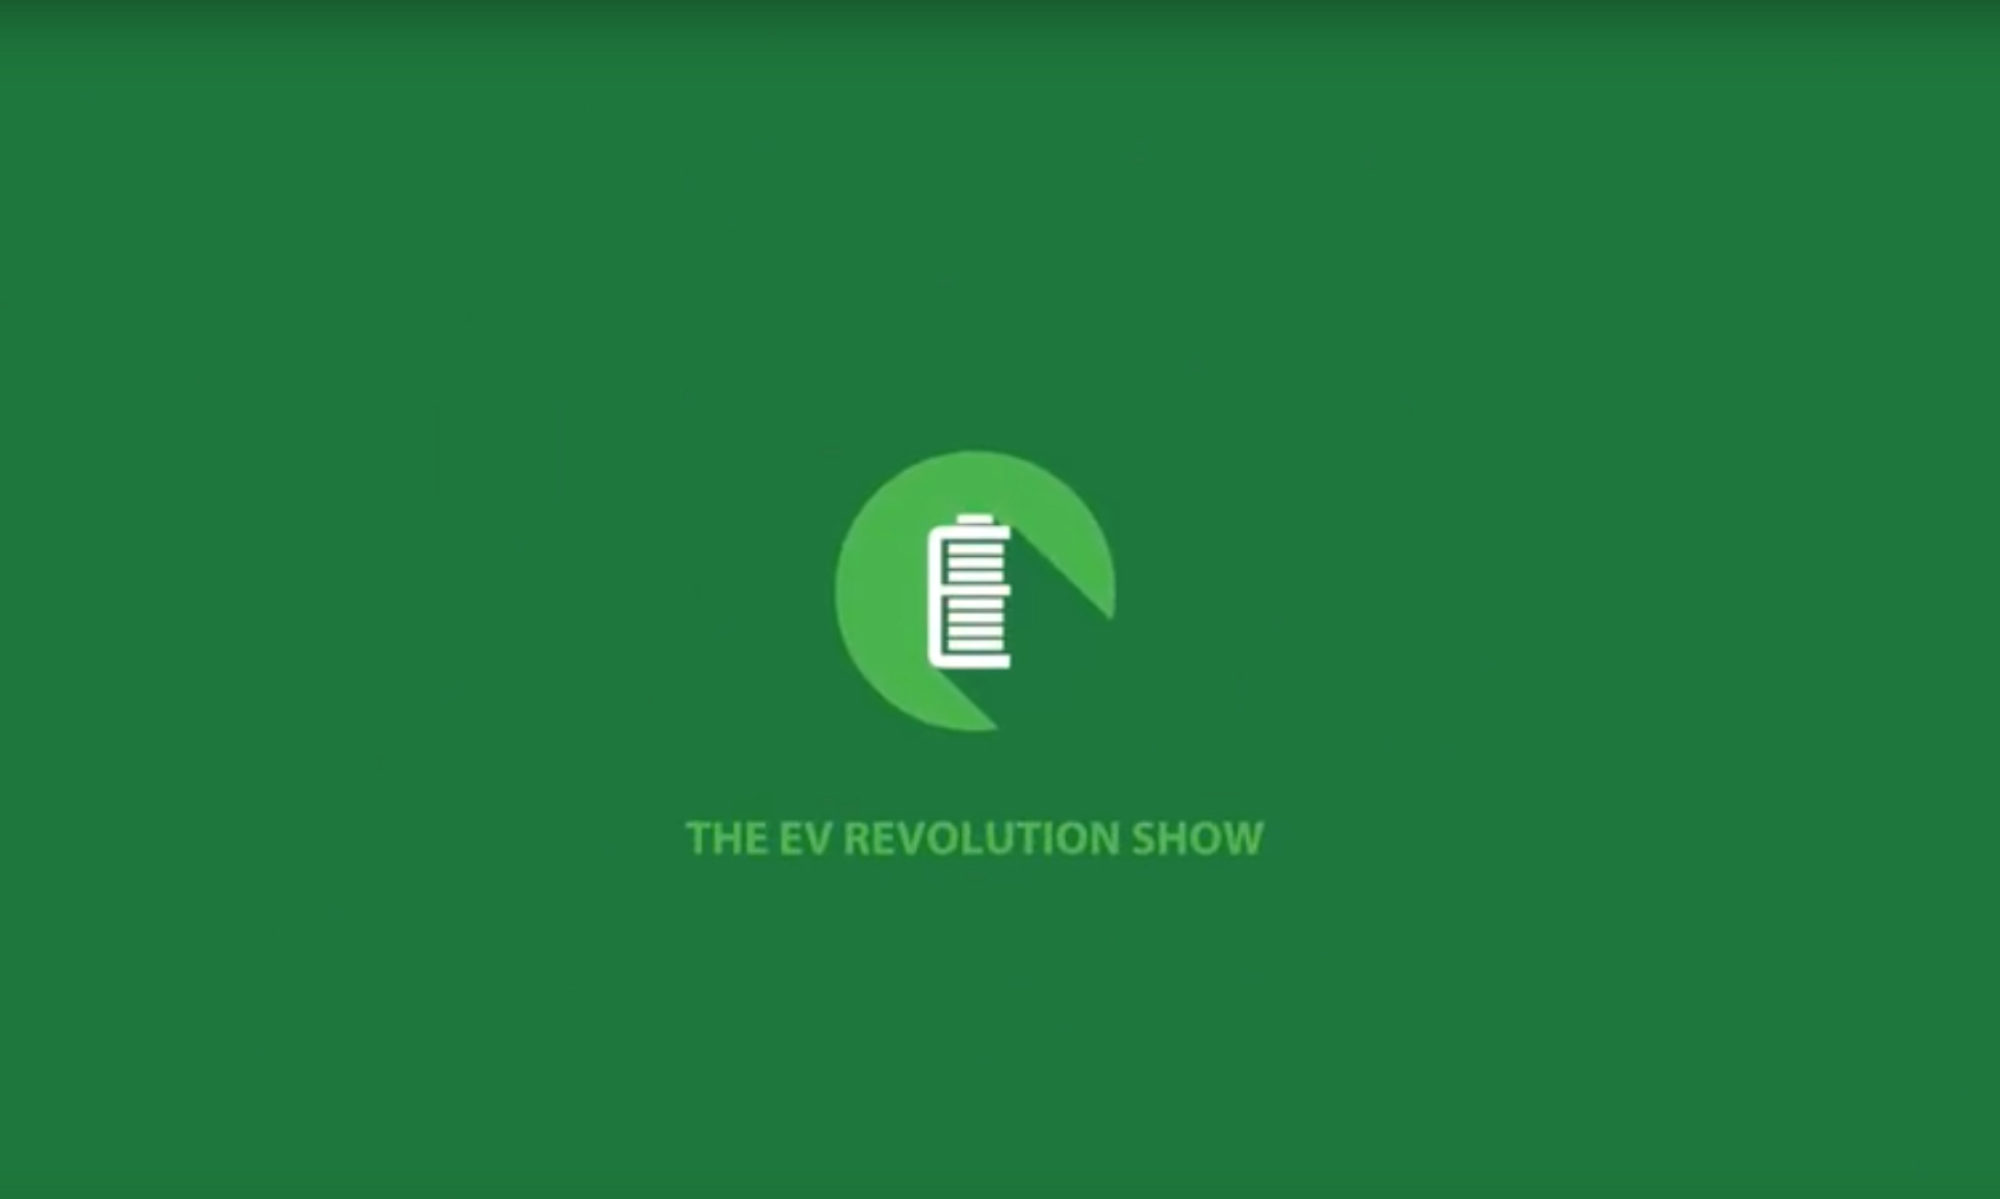 EV Revolution Show -  Audio Podcasts